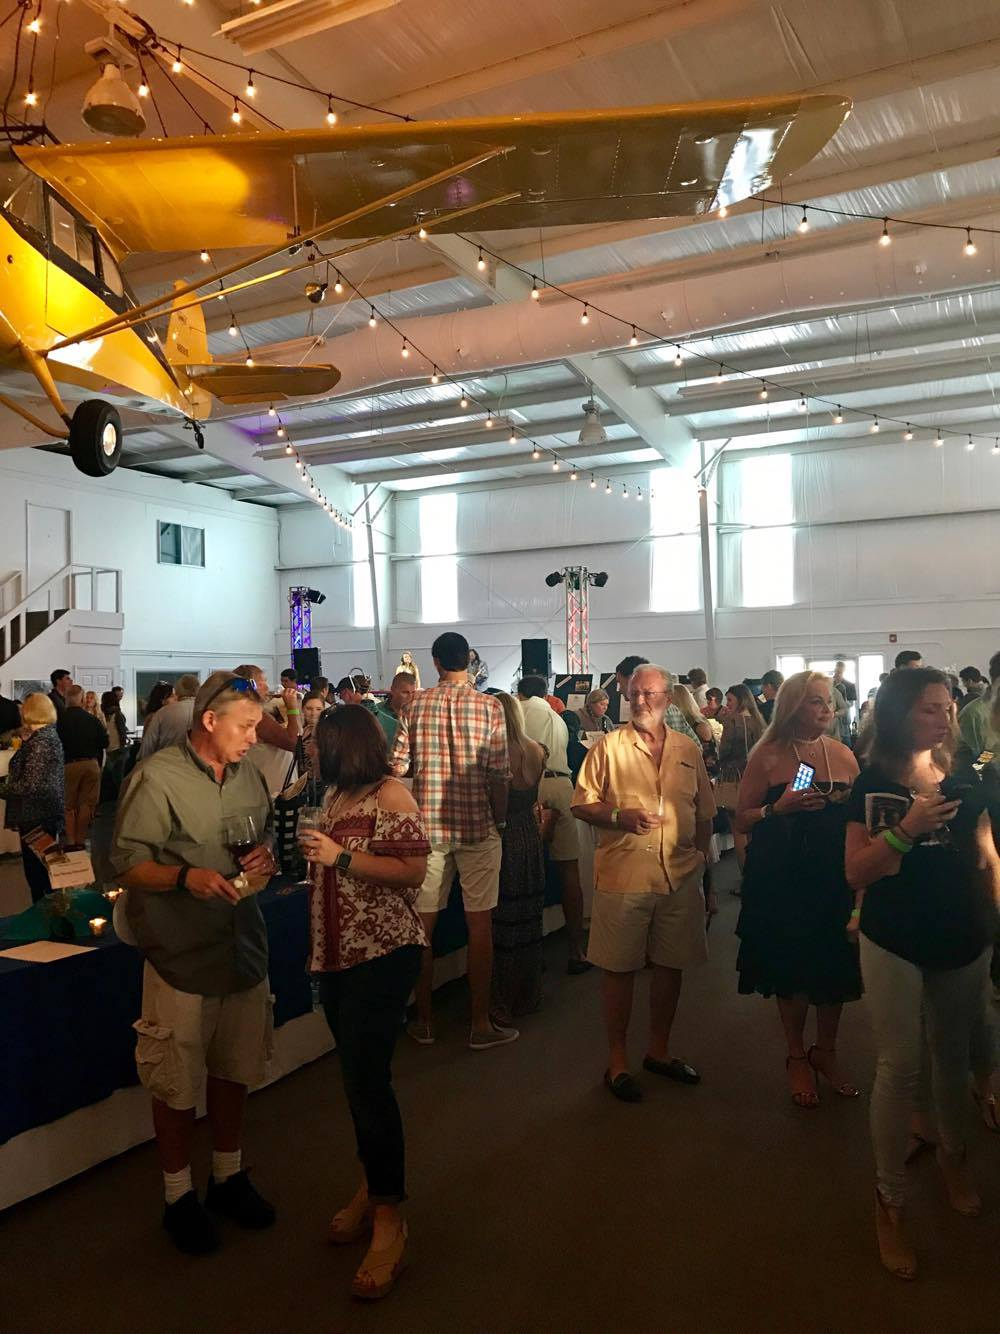 Flights and Bites - Environment - St Simons Island Food Spirits Festival